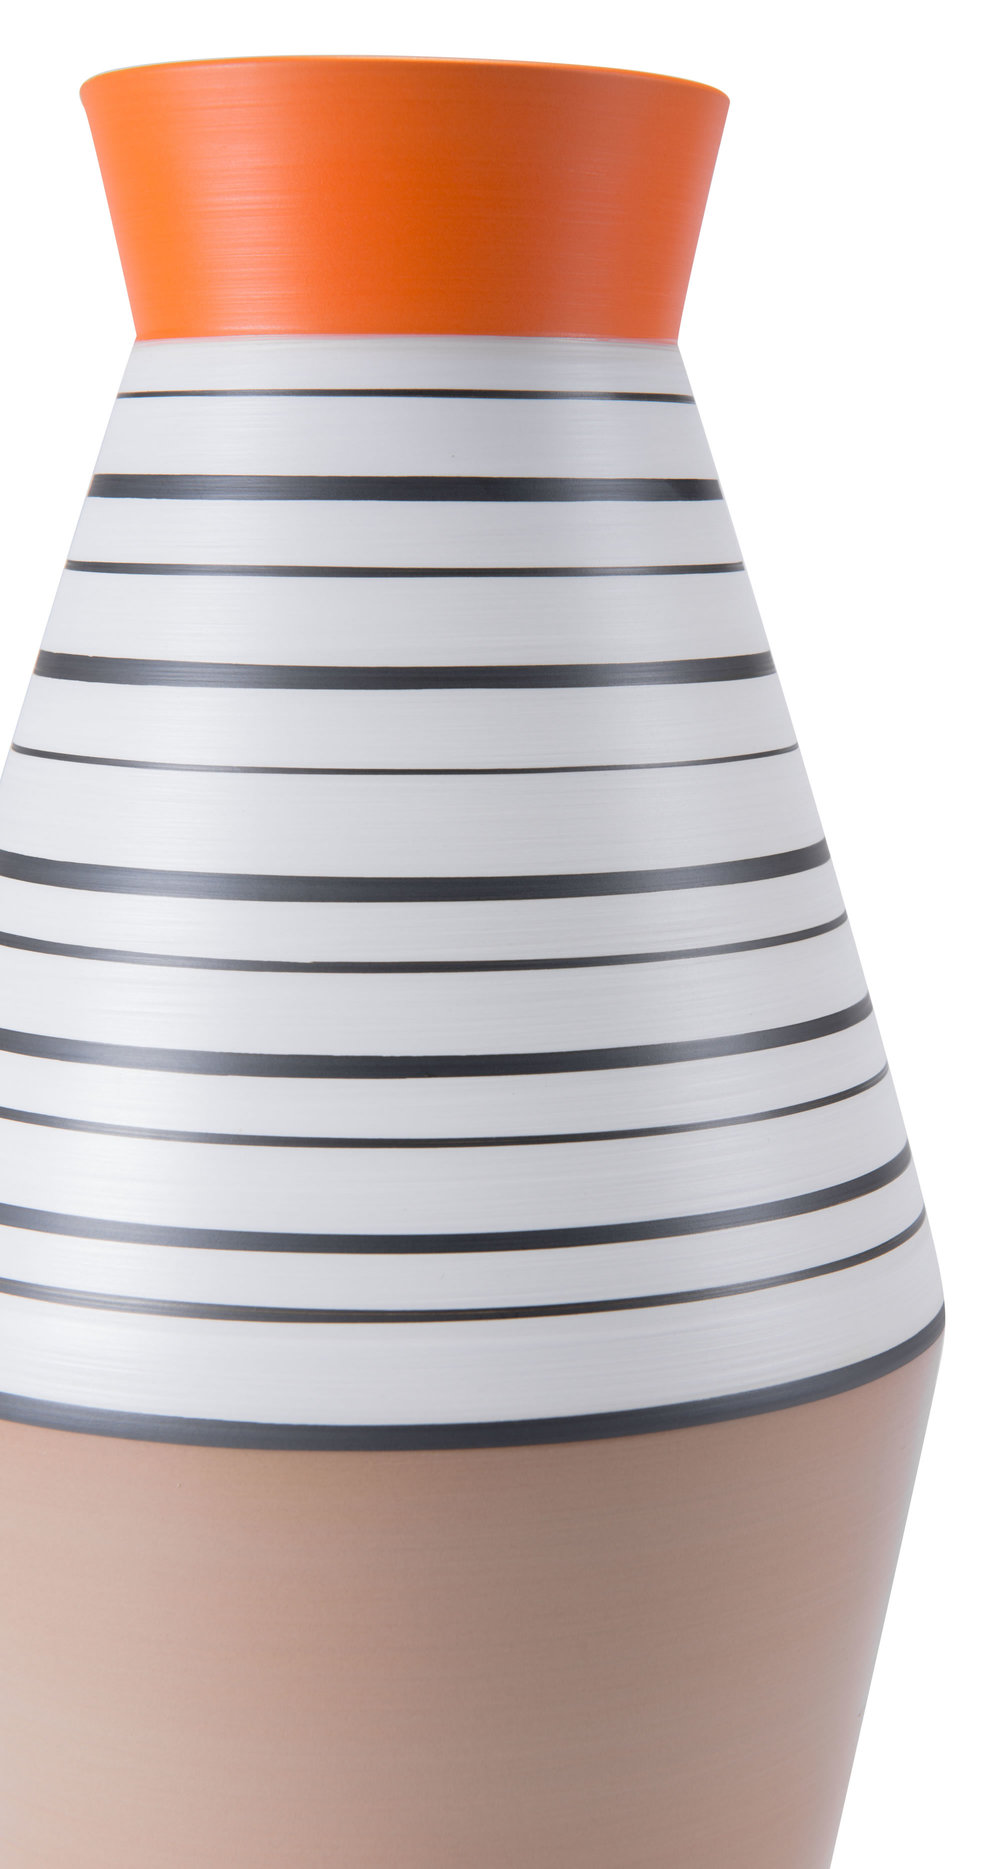 ZUO MODERN CONTEMPORARY, INC - Large Tunja Vase Multicolor